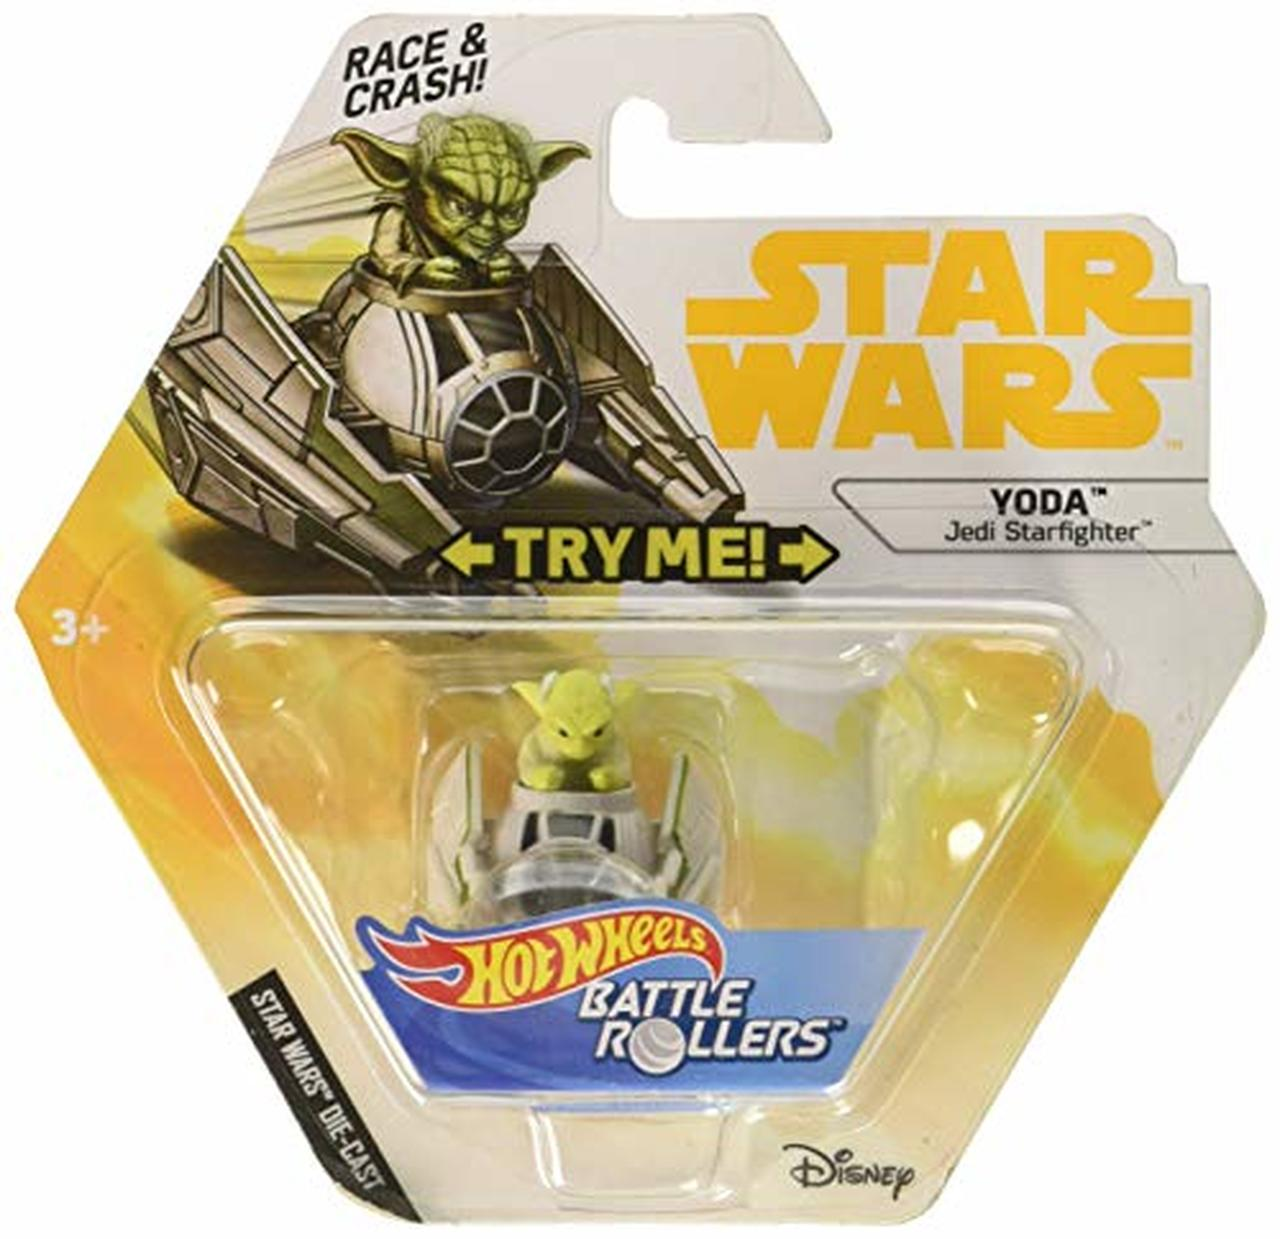 Solo: ASWS HW Yoda & Starfighter Battle Rollers Vehicle Toy